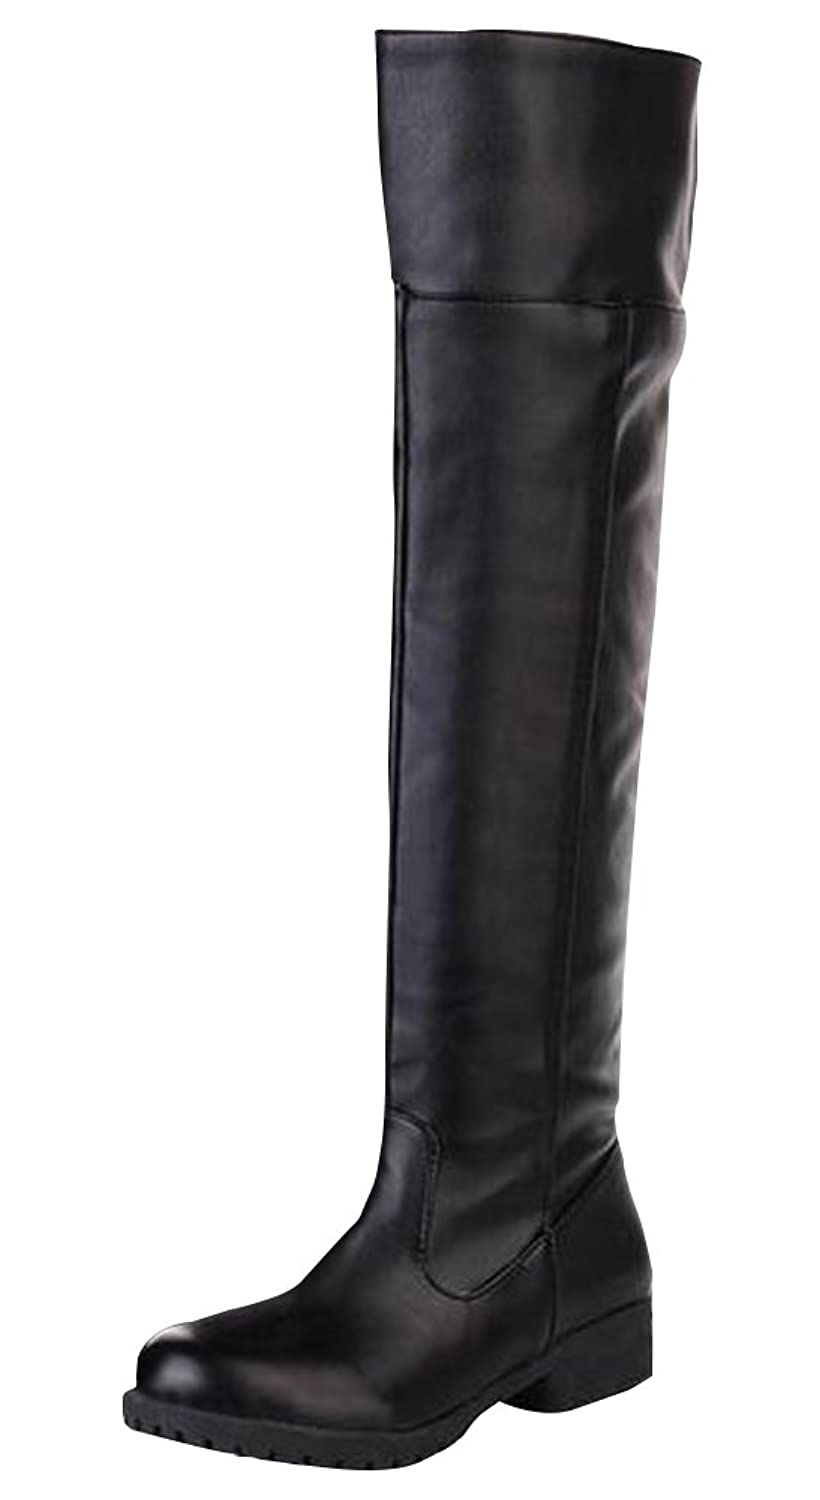 Ace Cos-play Knee-high Boot Riding Boots (mens, black)